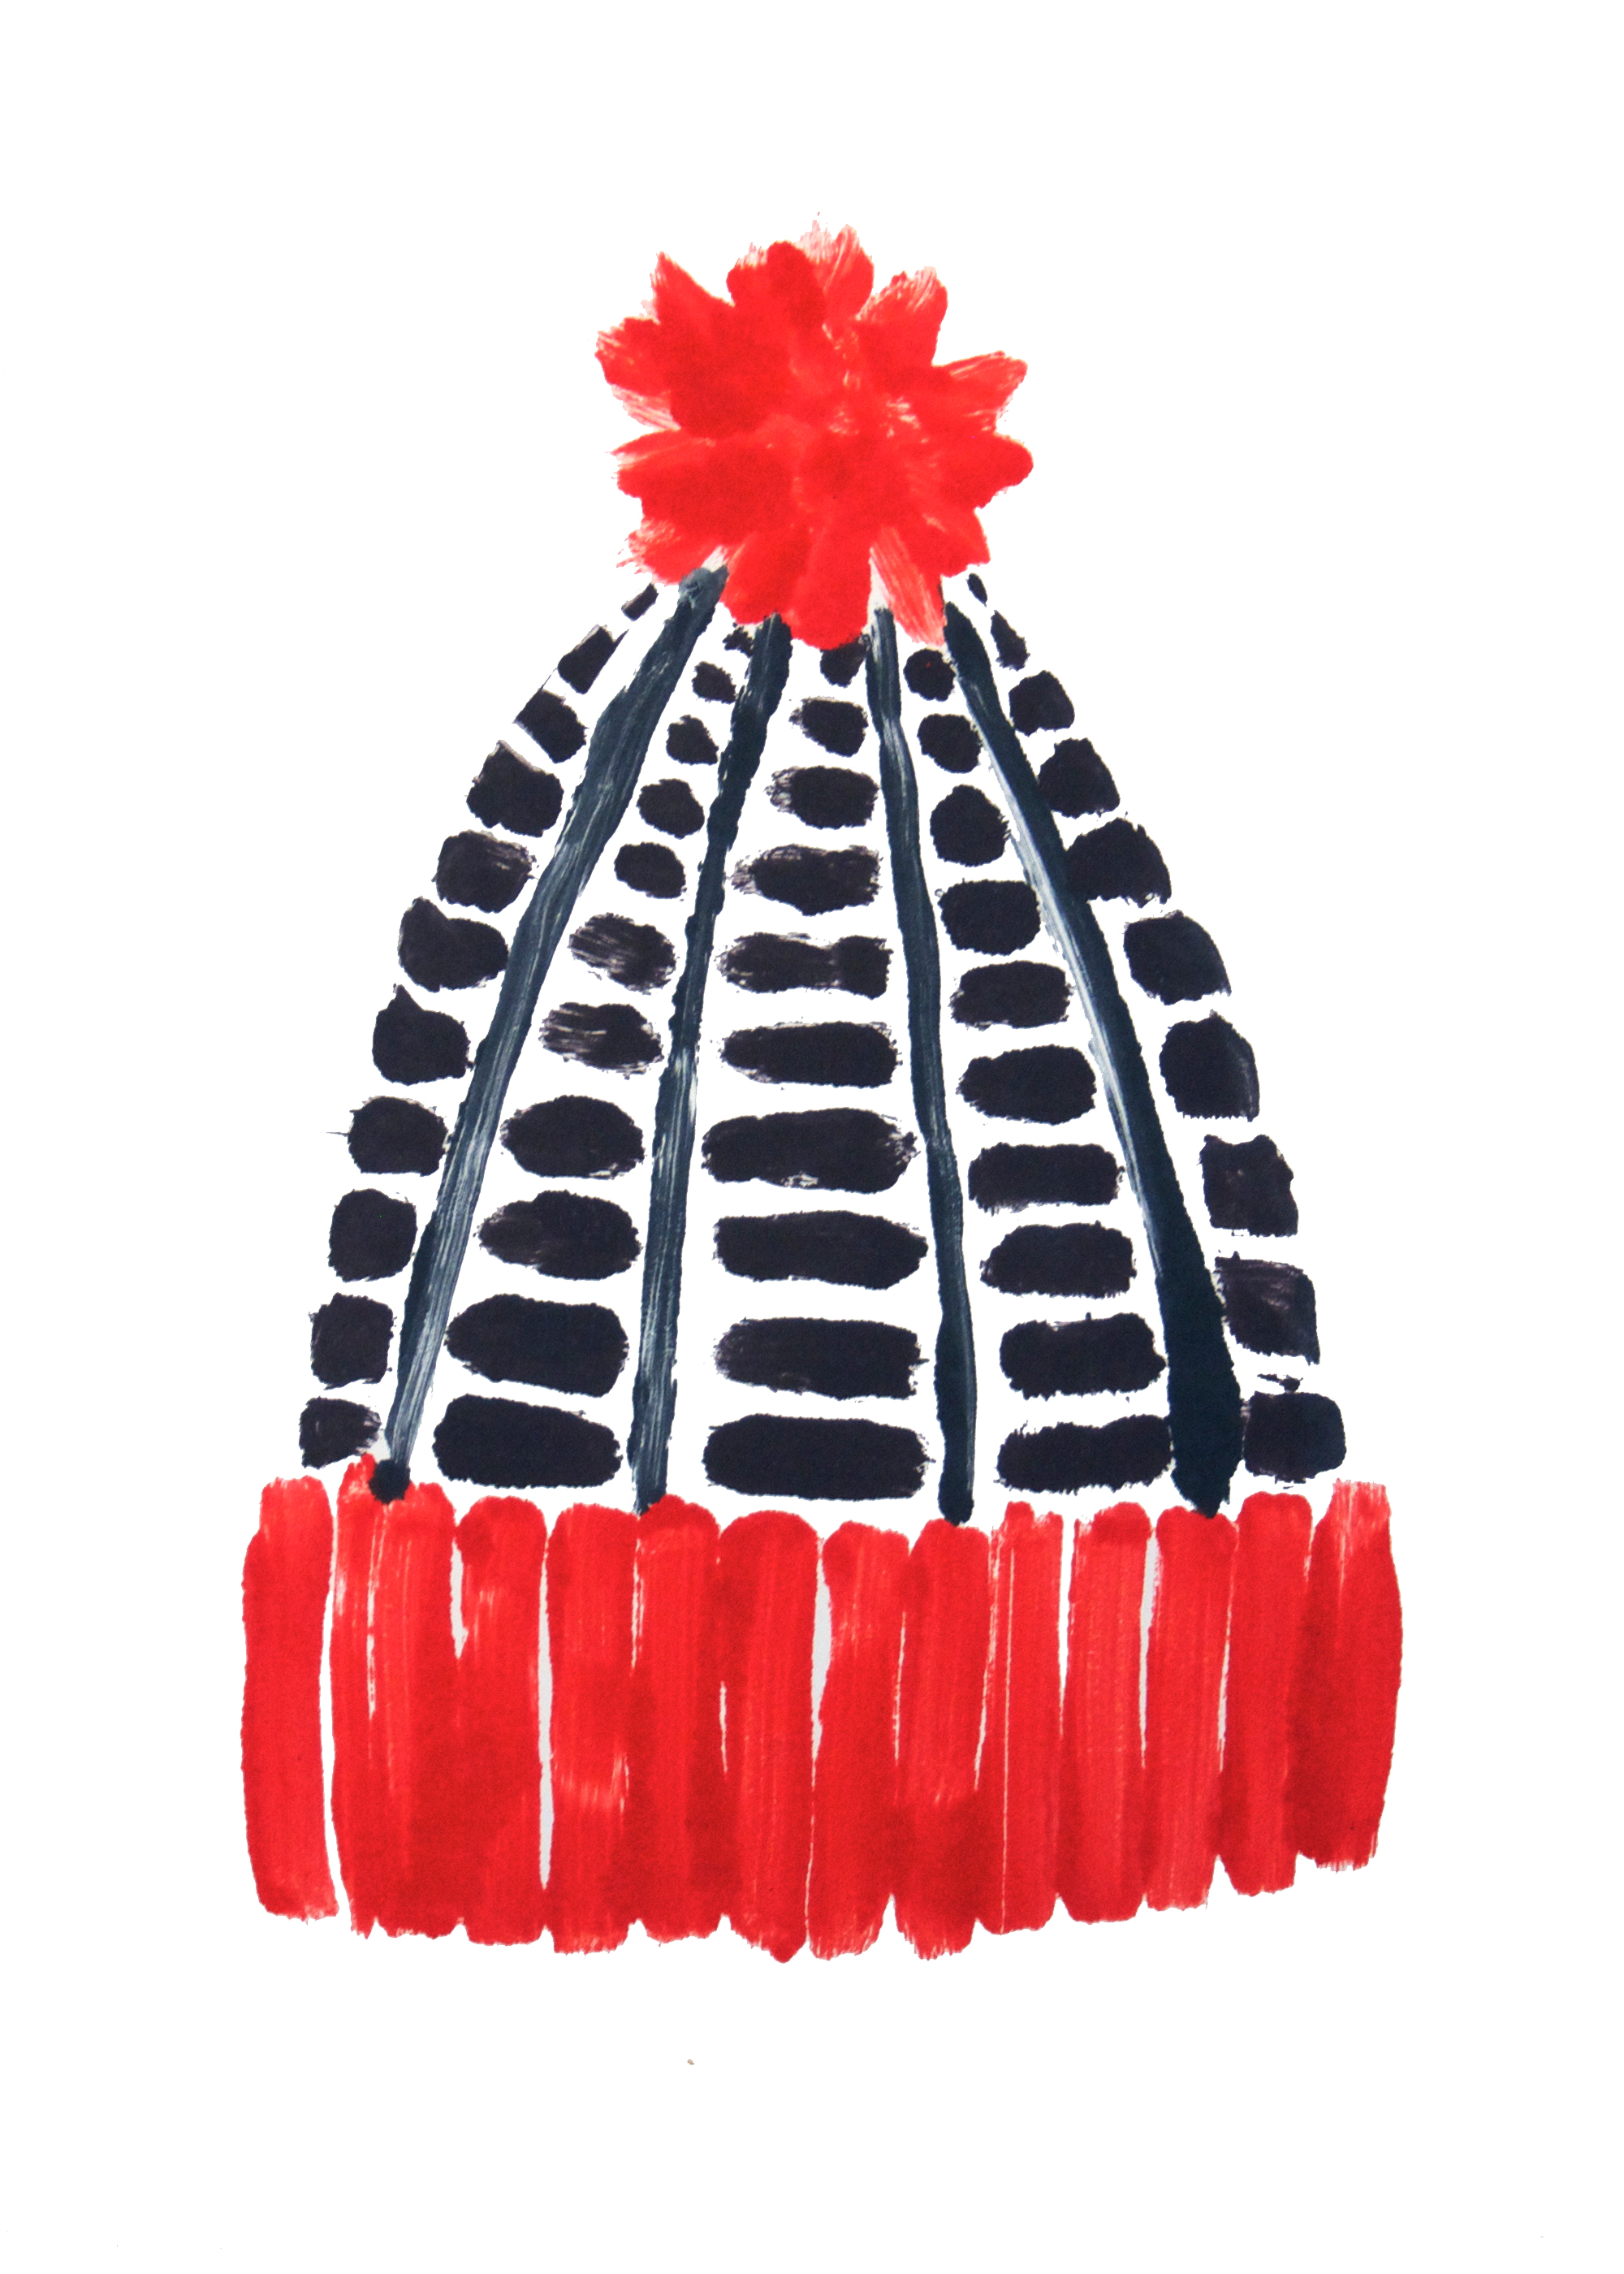 redpompom_by_casey_searles